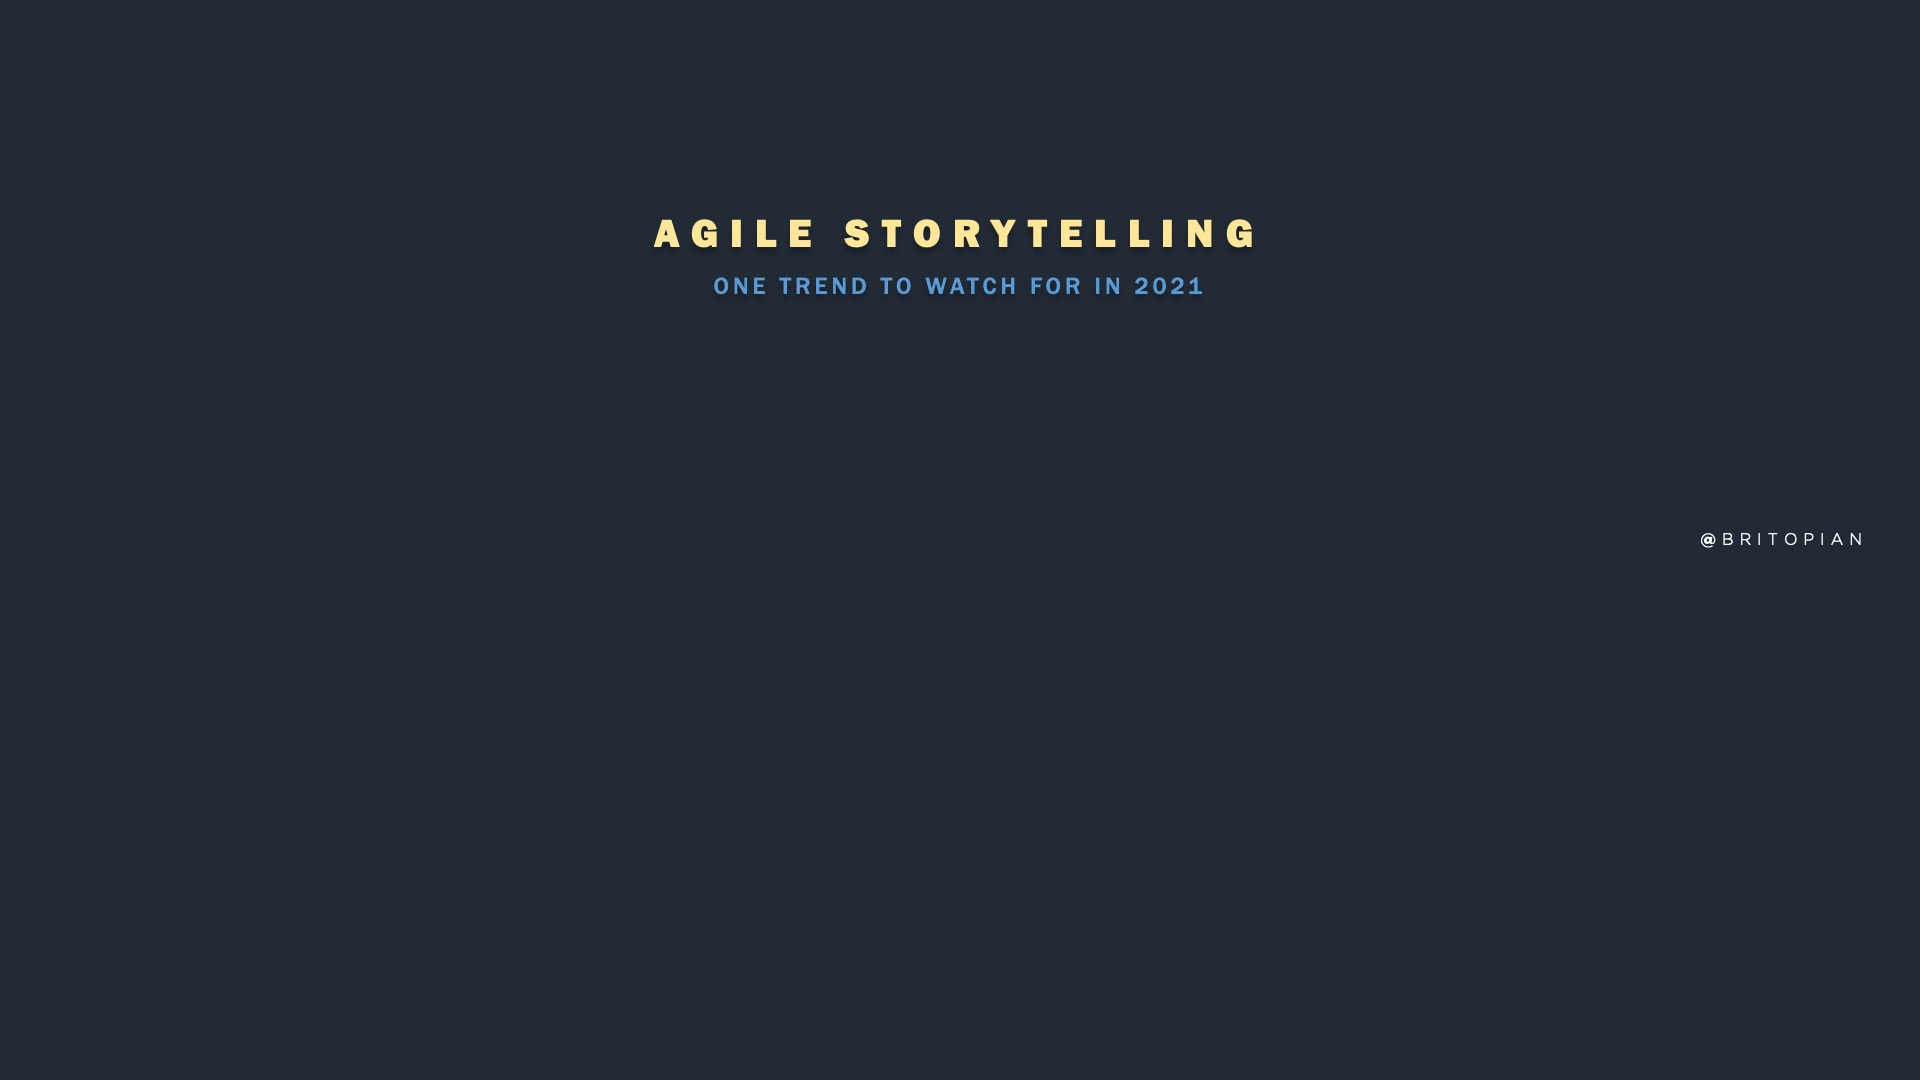 Agile Storytelling: The Top Content Marketing Trend to Watch in 2021